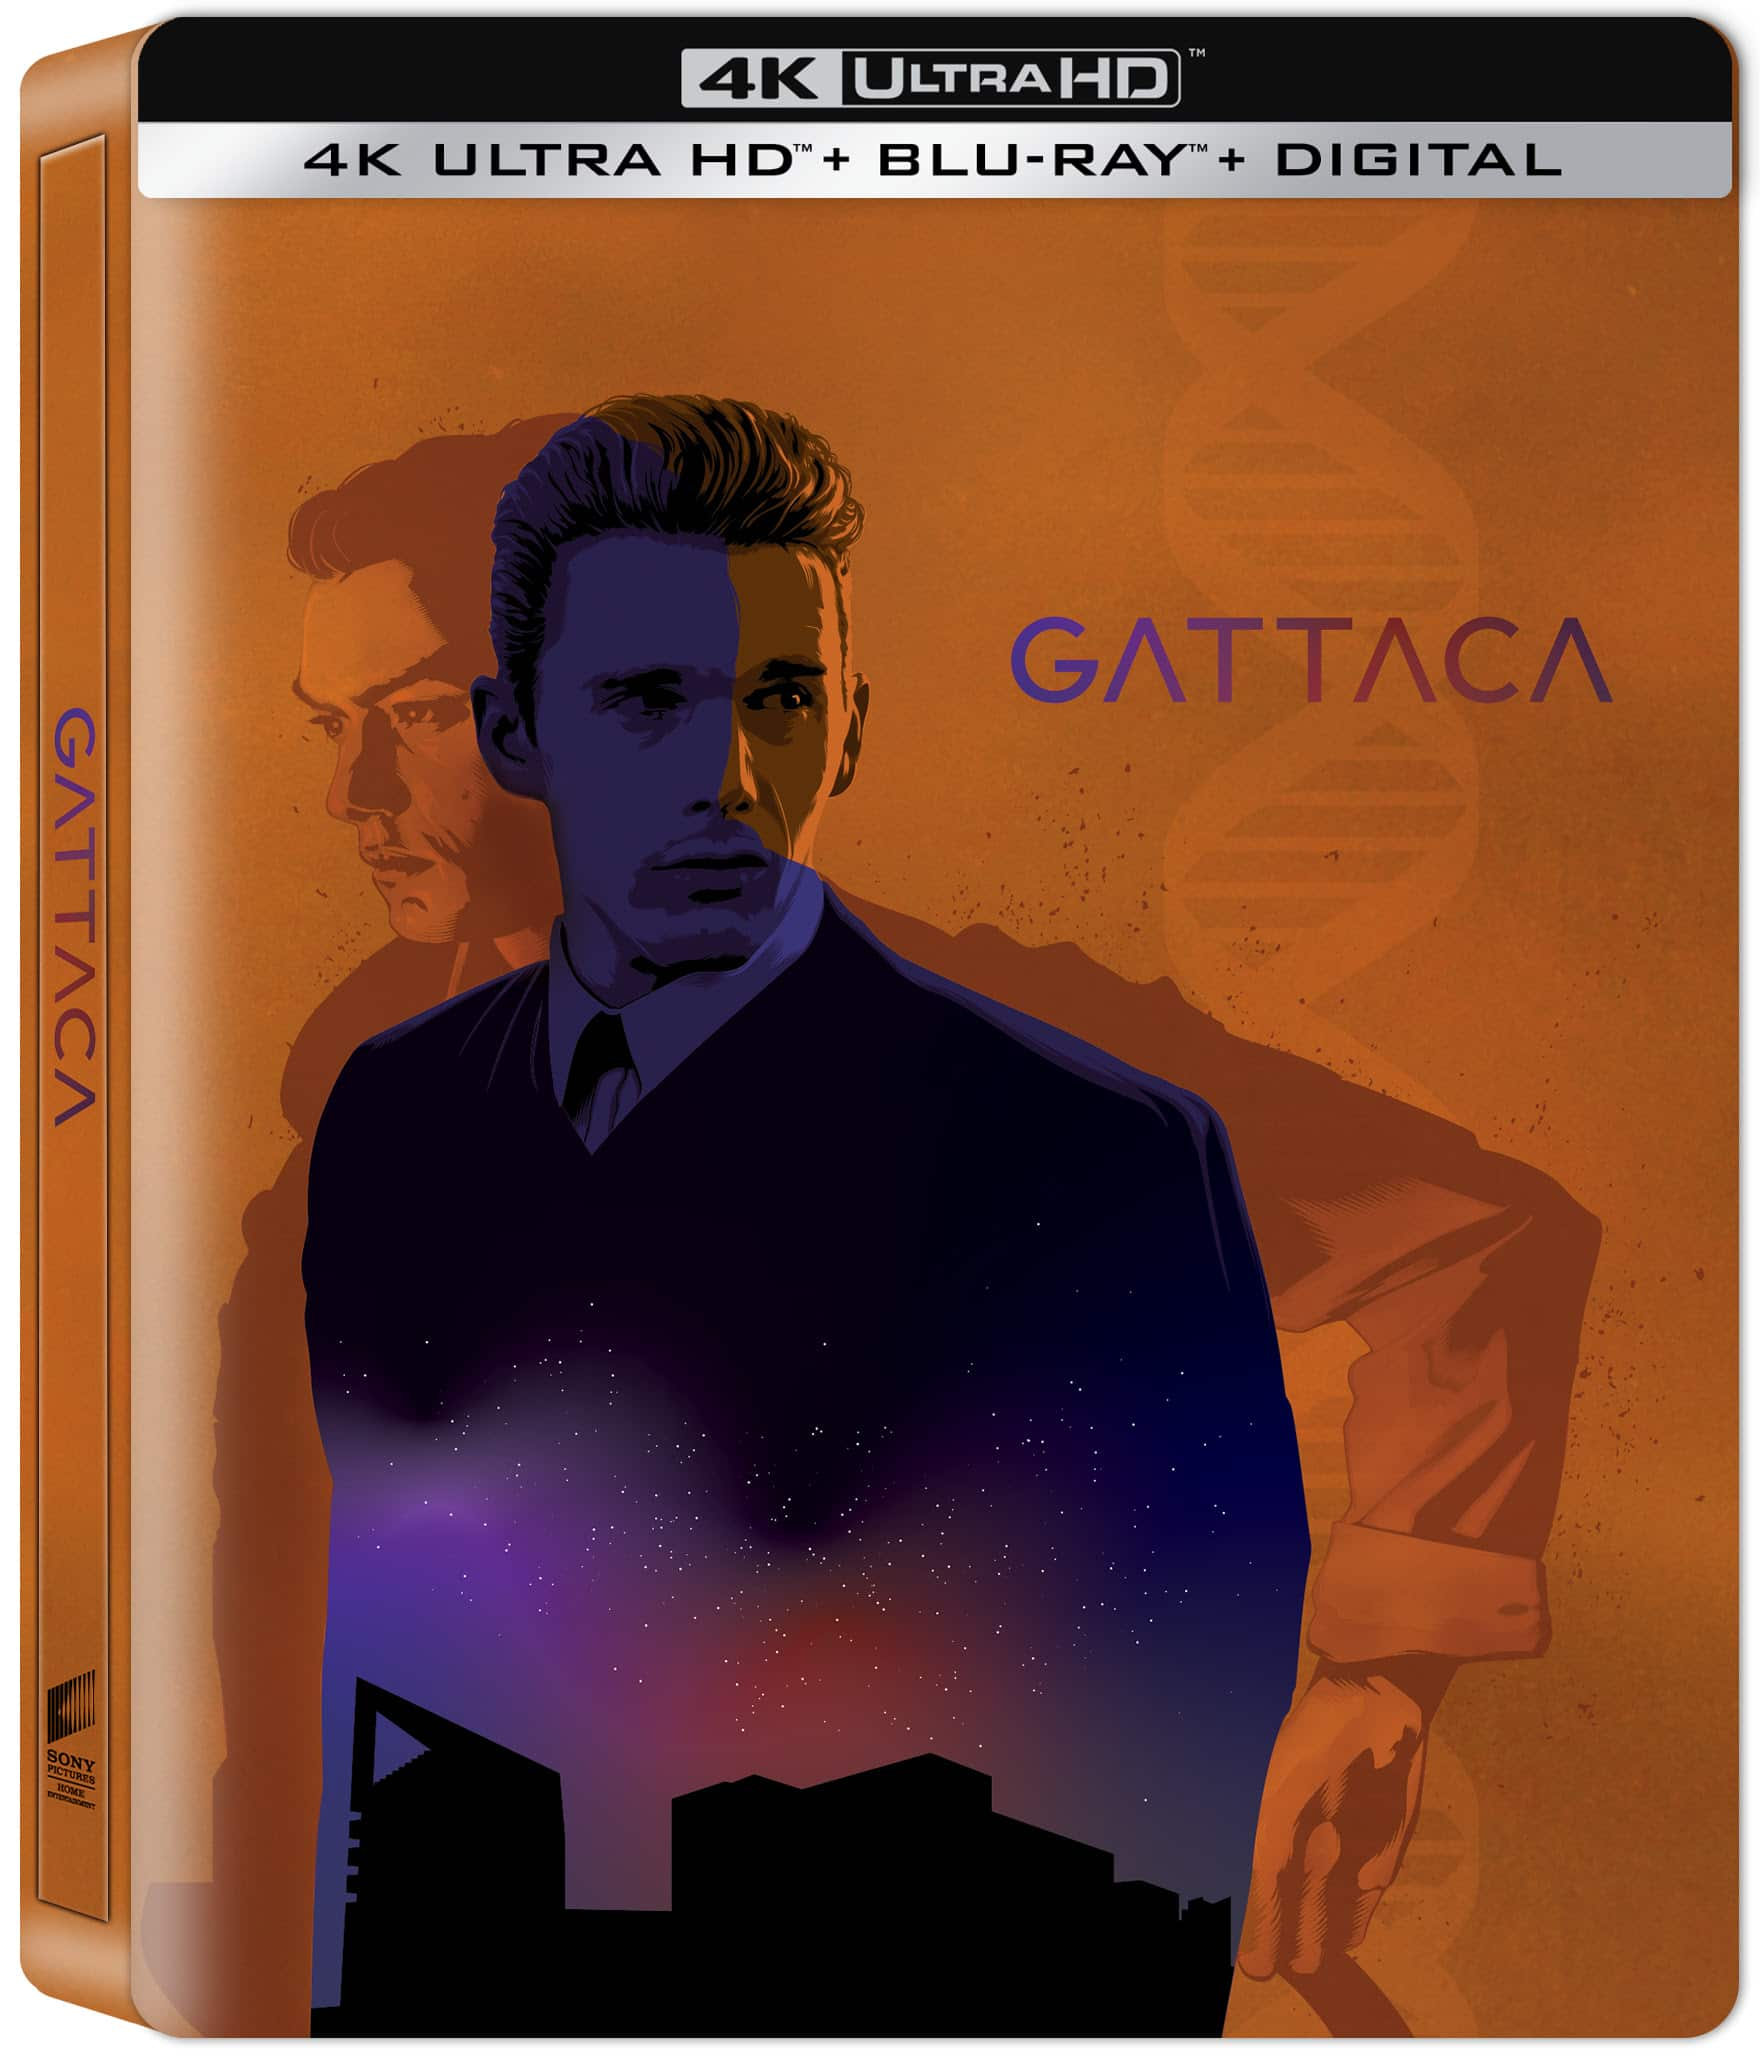 Gattaca Debuts In 4K Ultra HD Like You've Never Seen